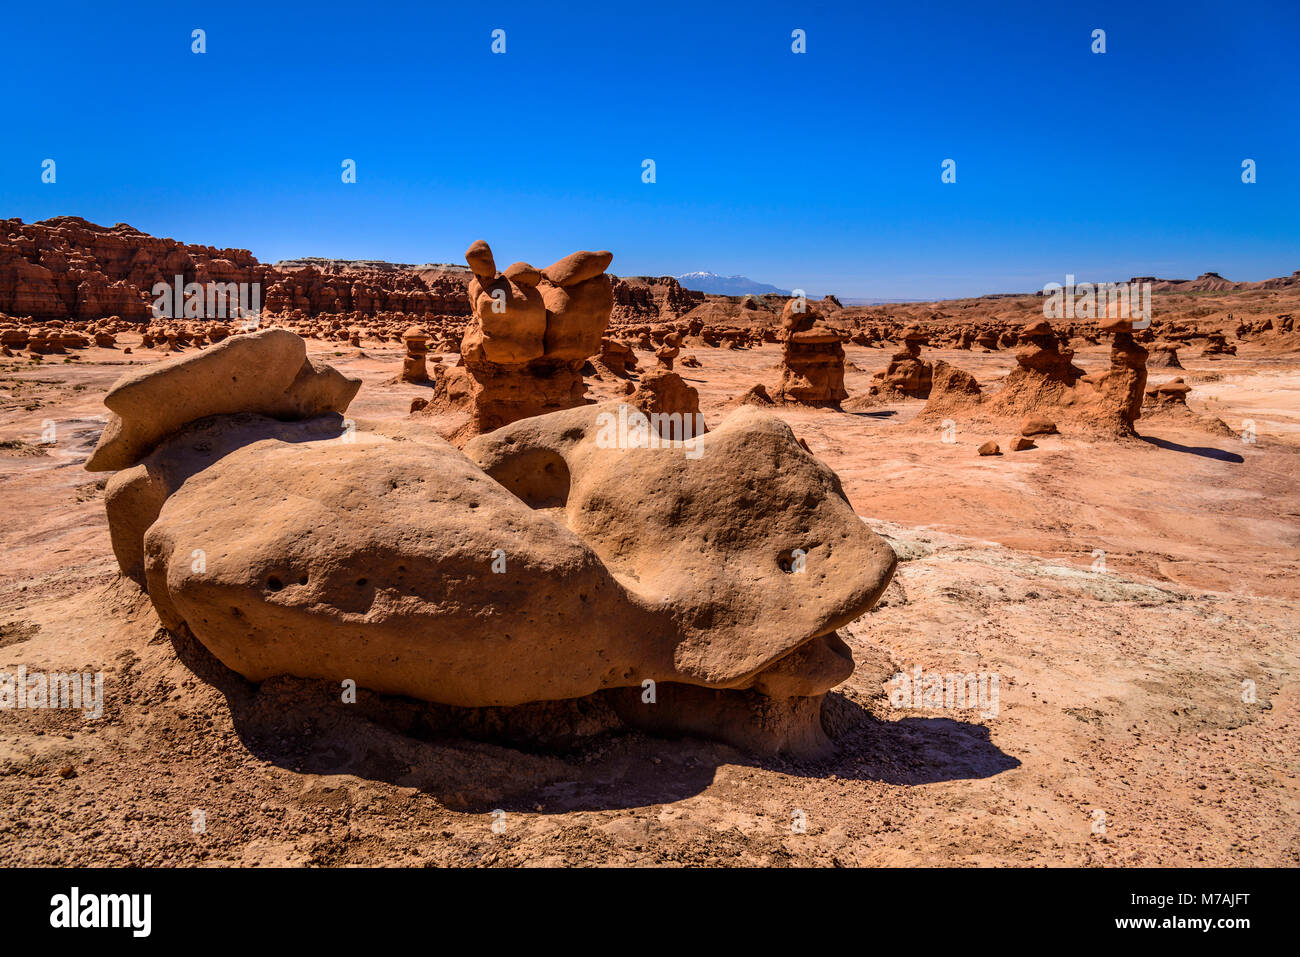 The USA, Utah, Emery County, Green River, Goblin Valley State Park, Goblins - Stock Image